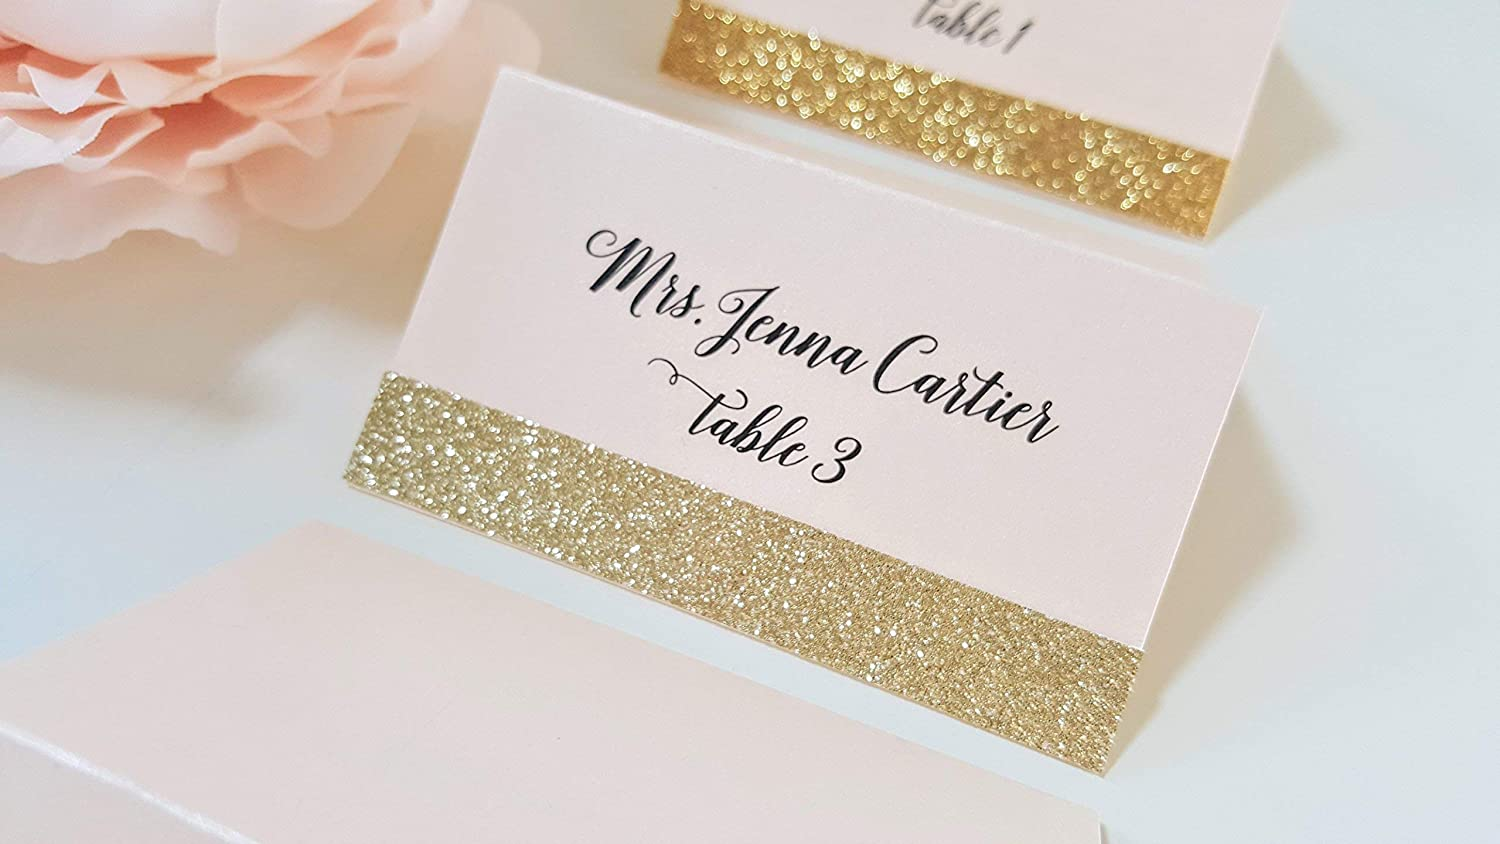 Wedding Name Cards.Amazon Com Gold Glitter Wedding Place Cards Blush And Gold